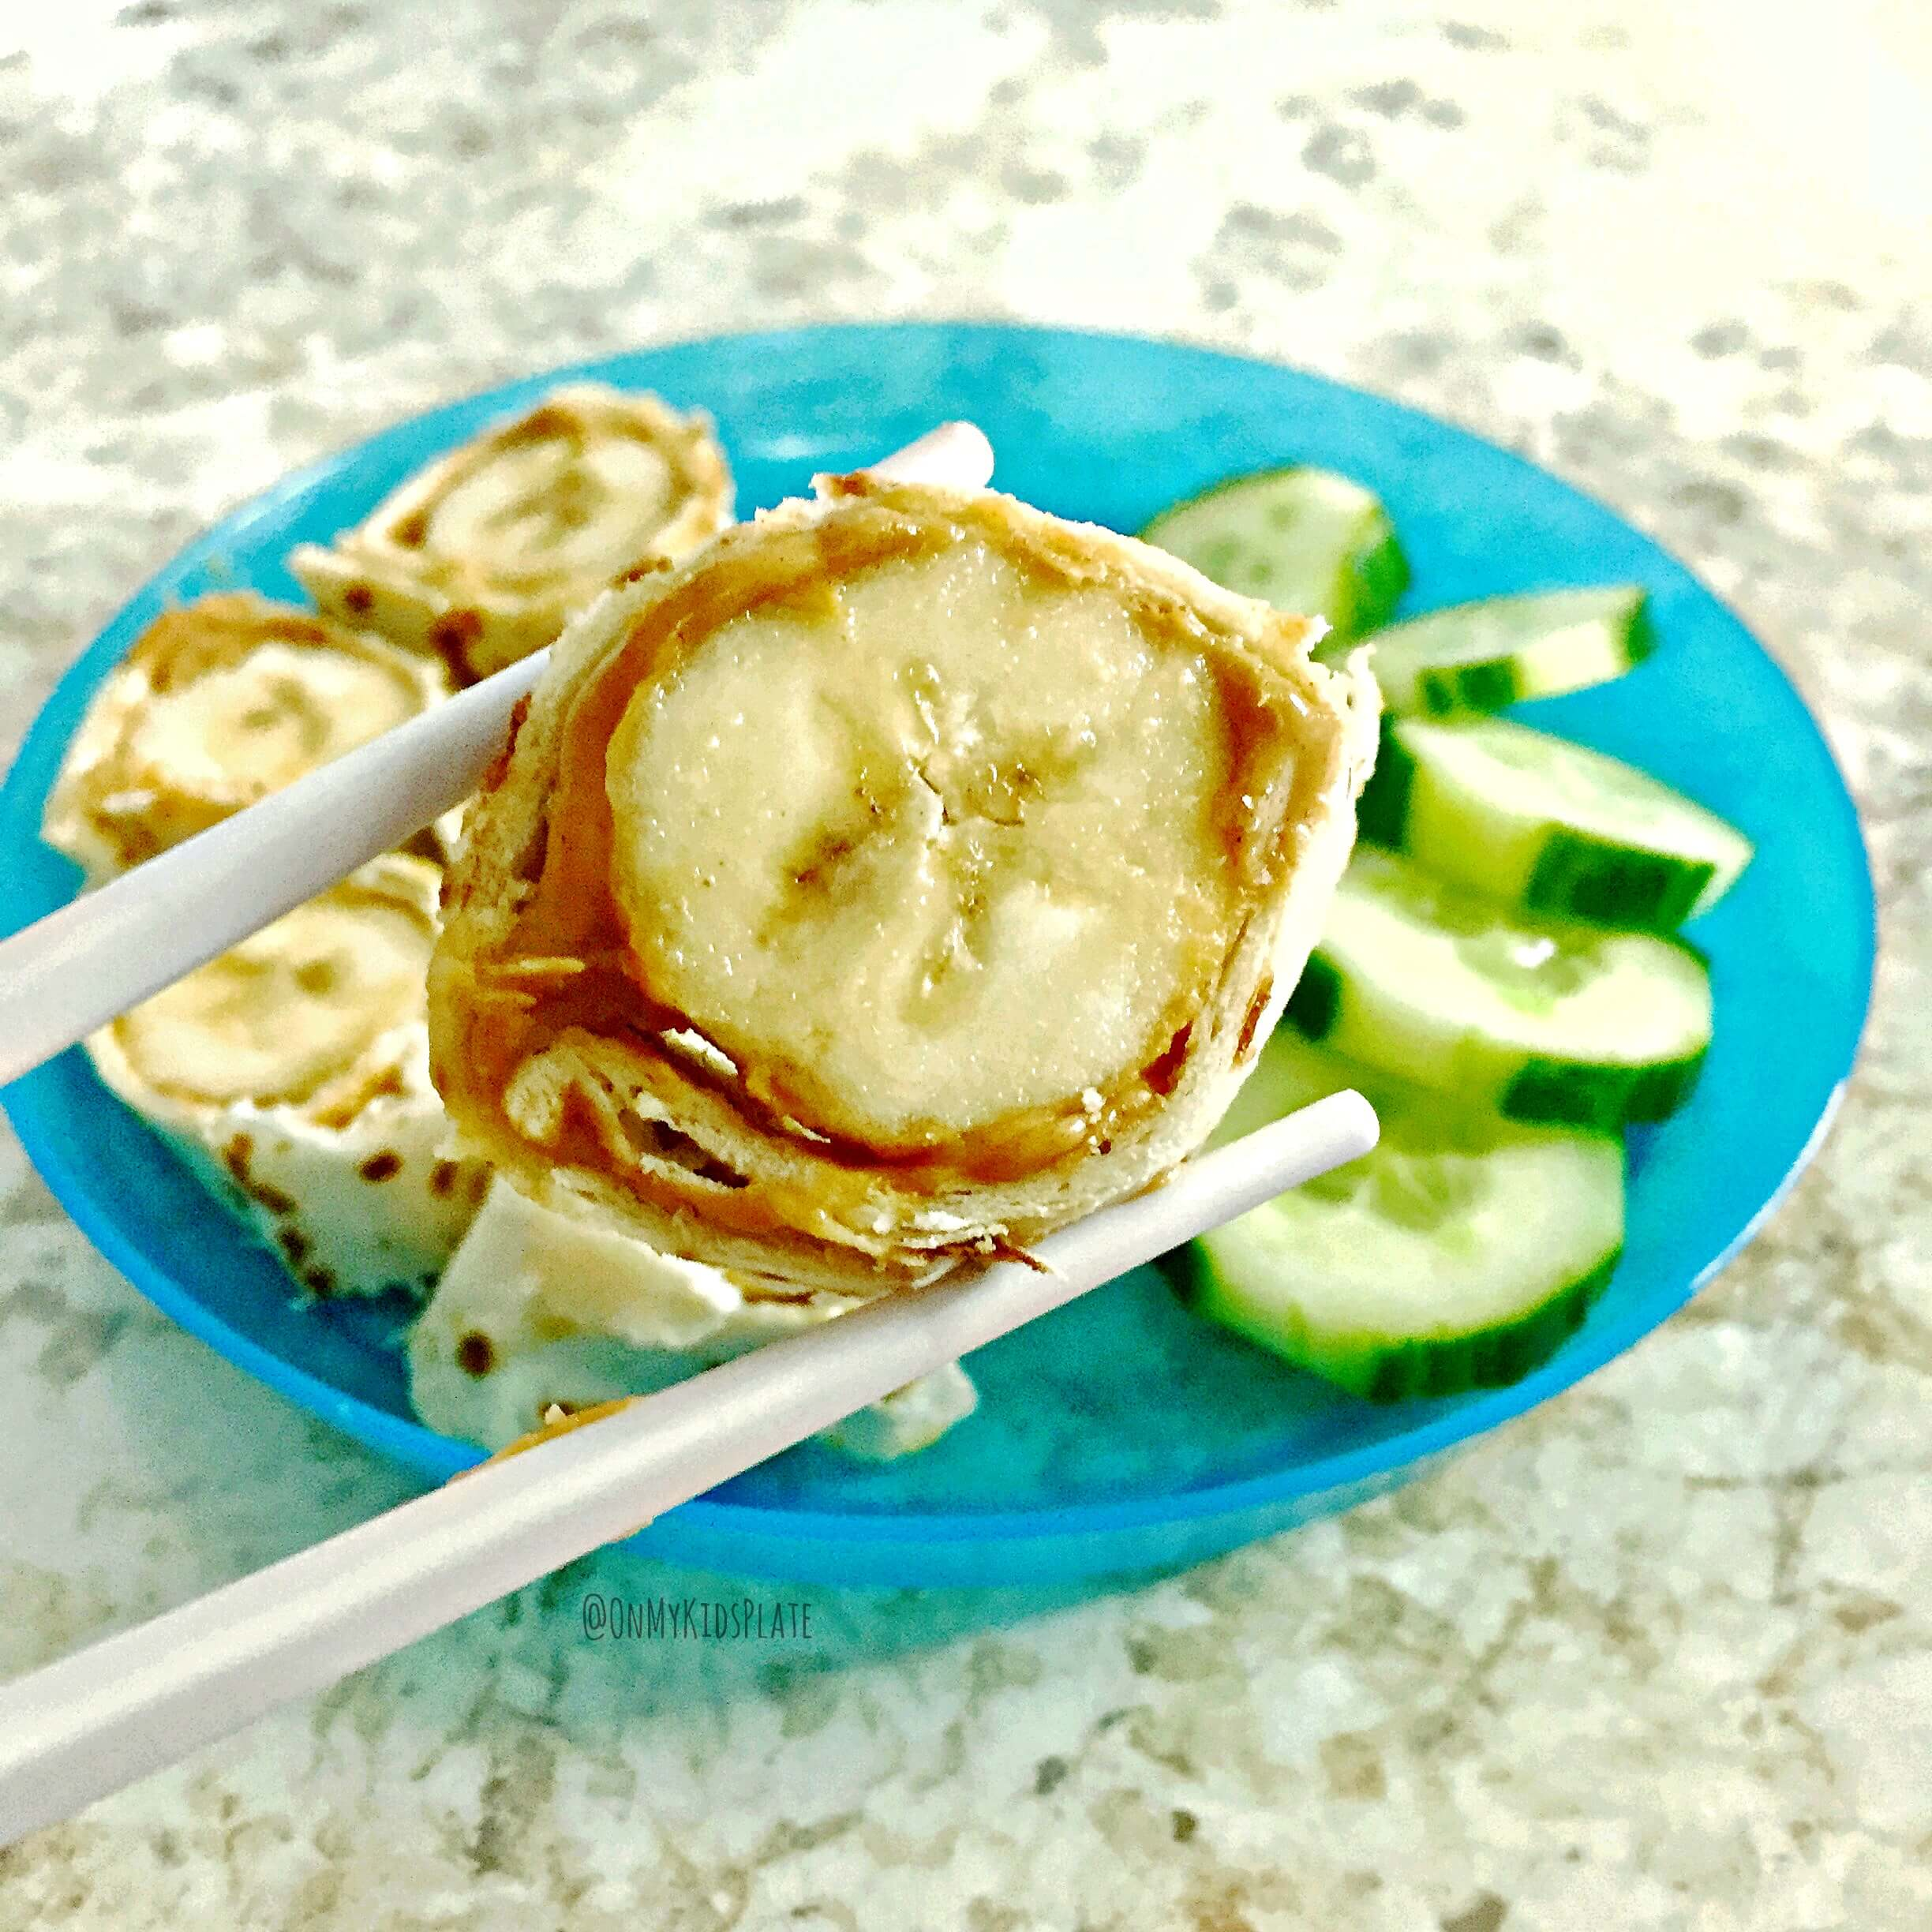 banana sliced with peanut butter wrapped in tortilla on a plate with sliced cucumber, one slice being held by chopsticks